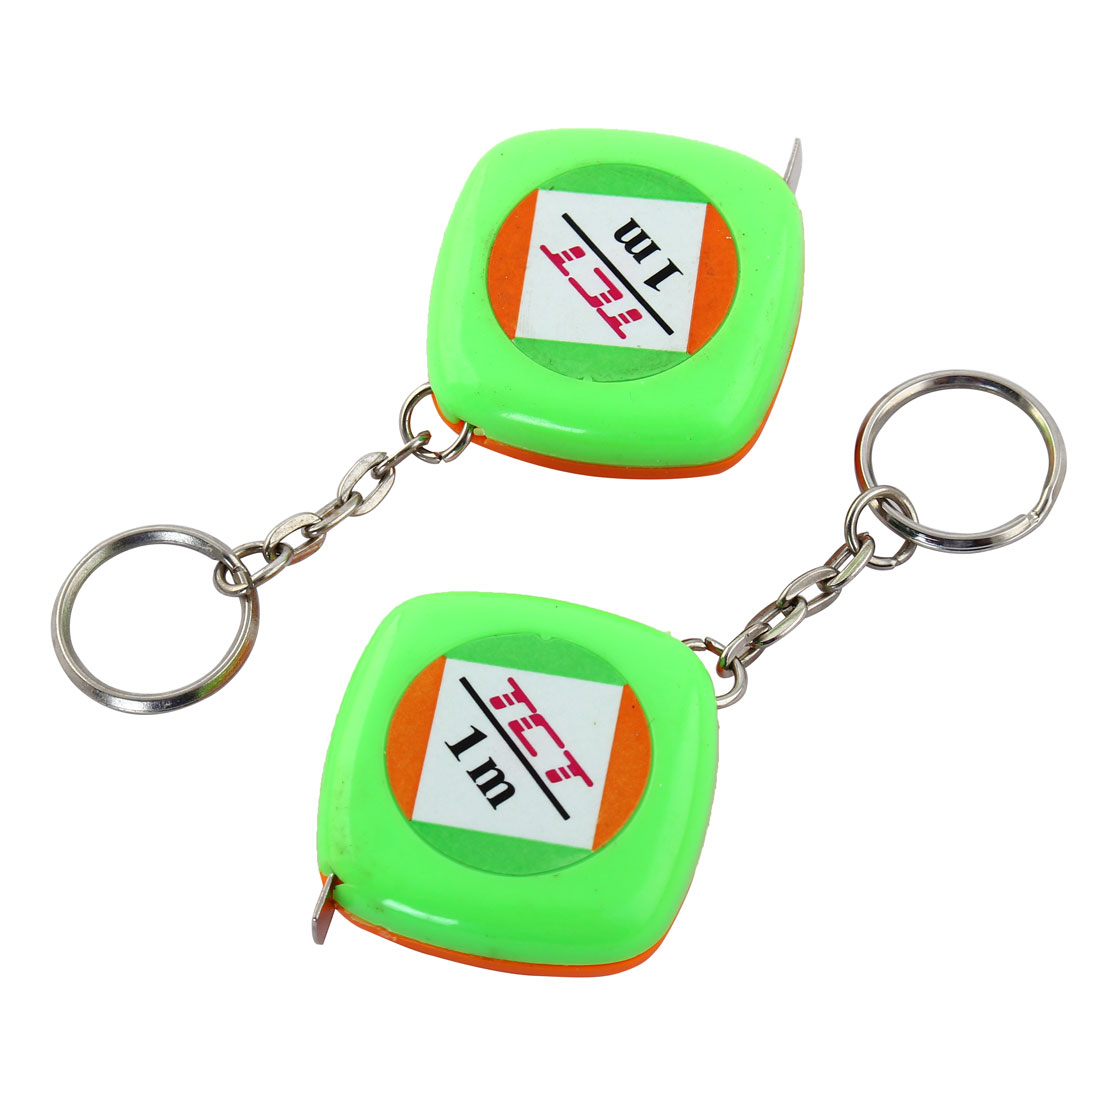 Measuring Tape Pocket Ruler Keyring Split Ring Green Orange 1m Length 2pcs